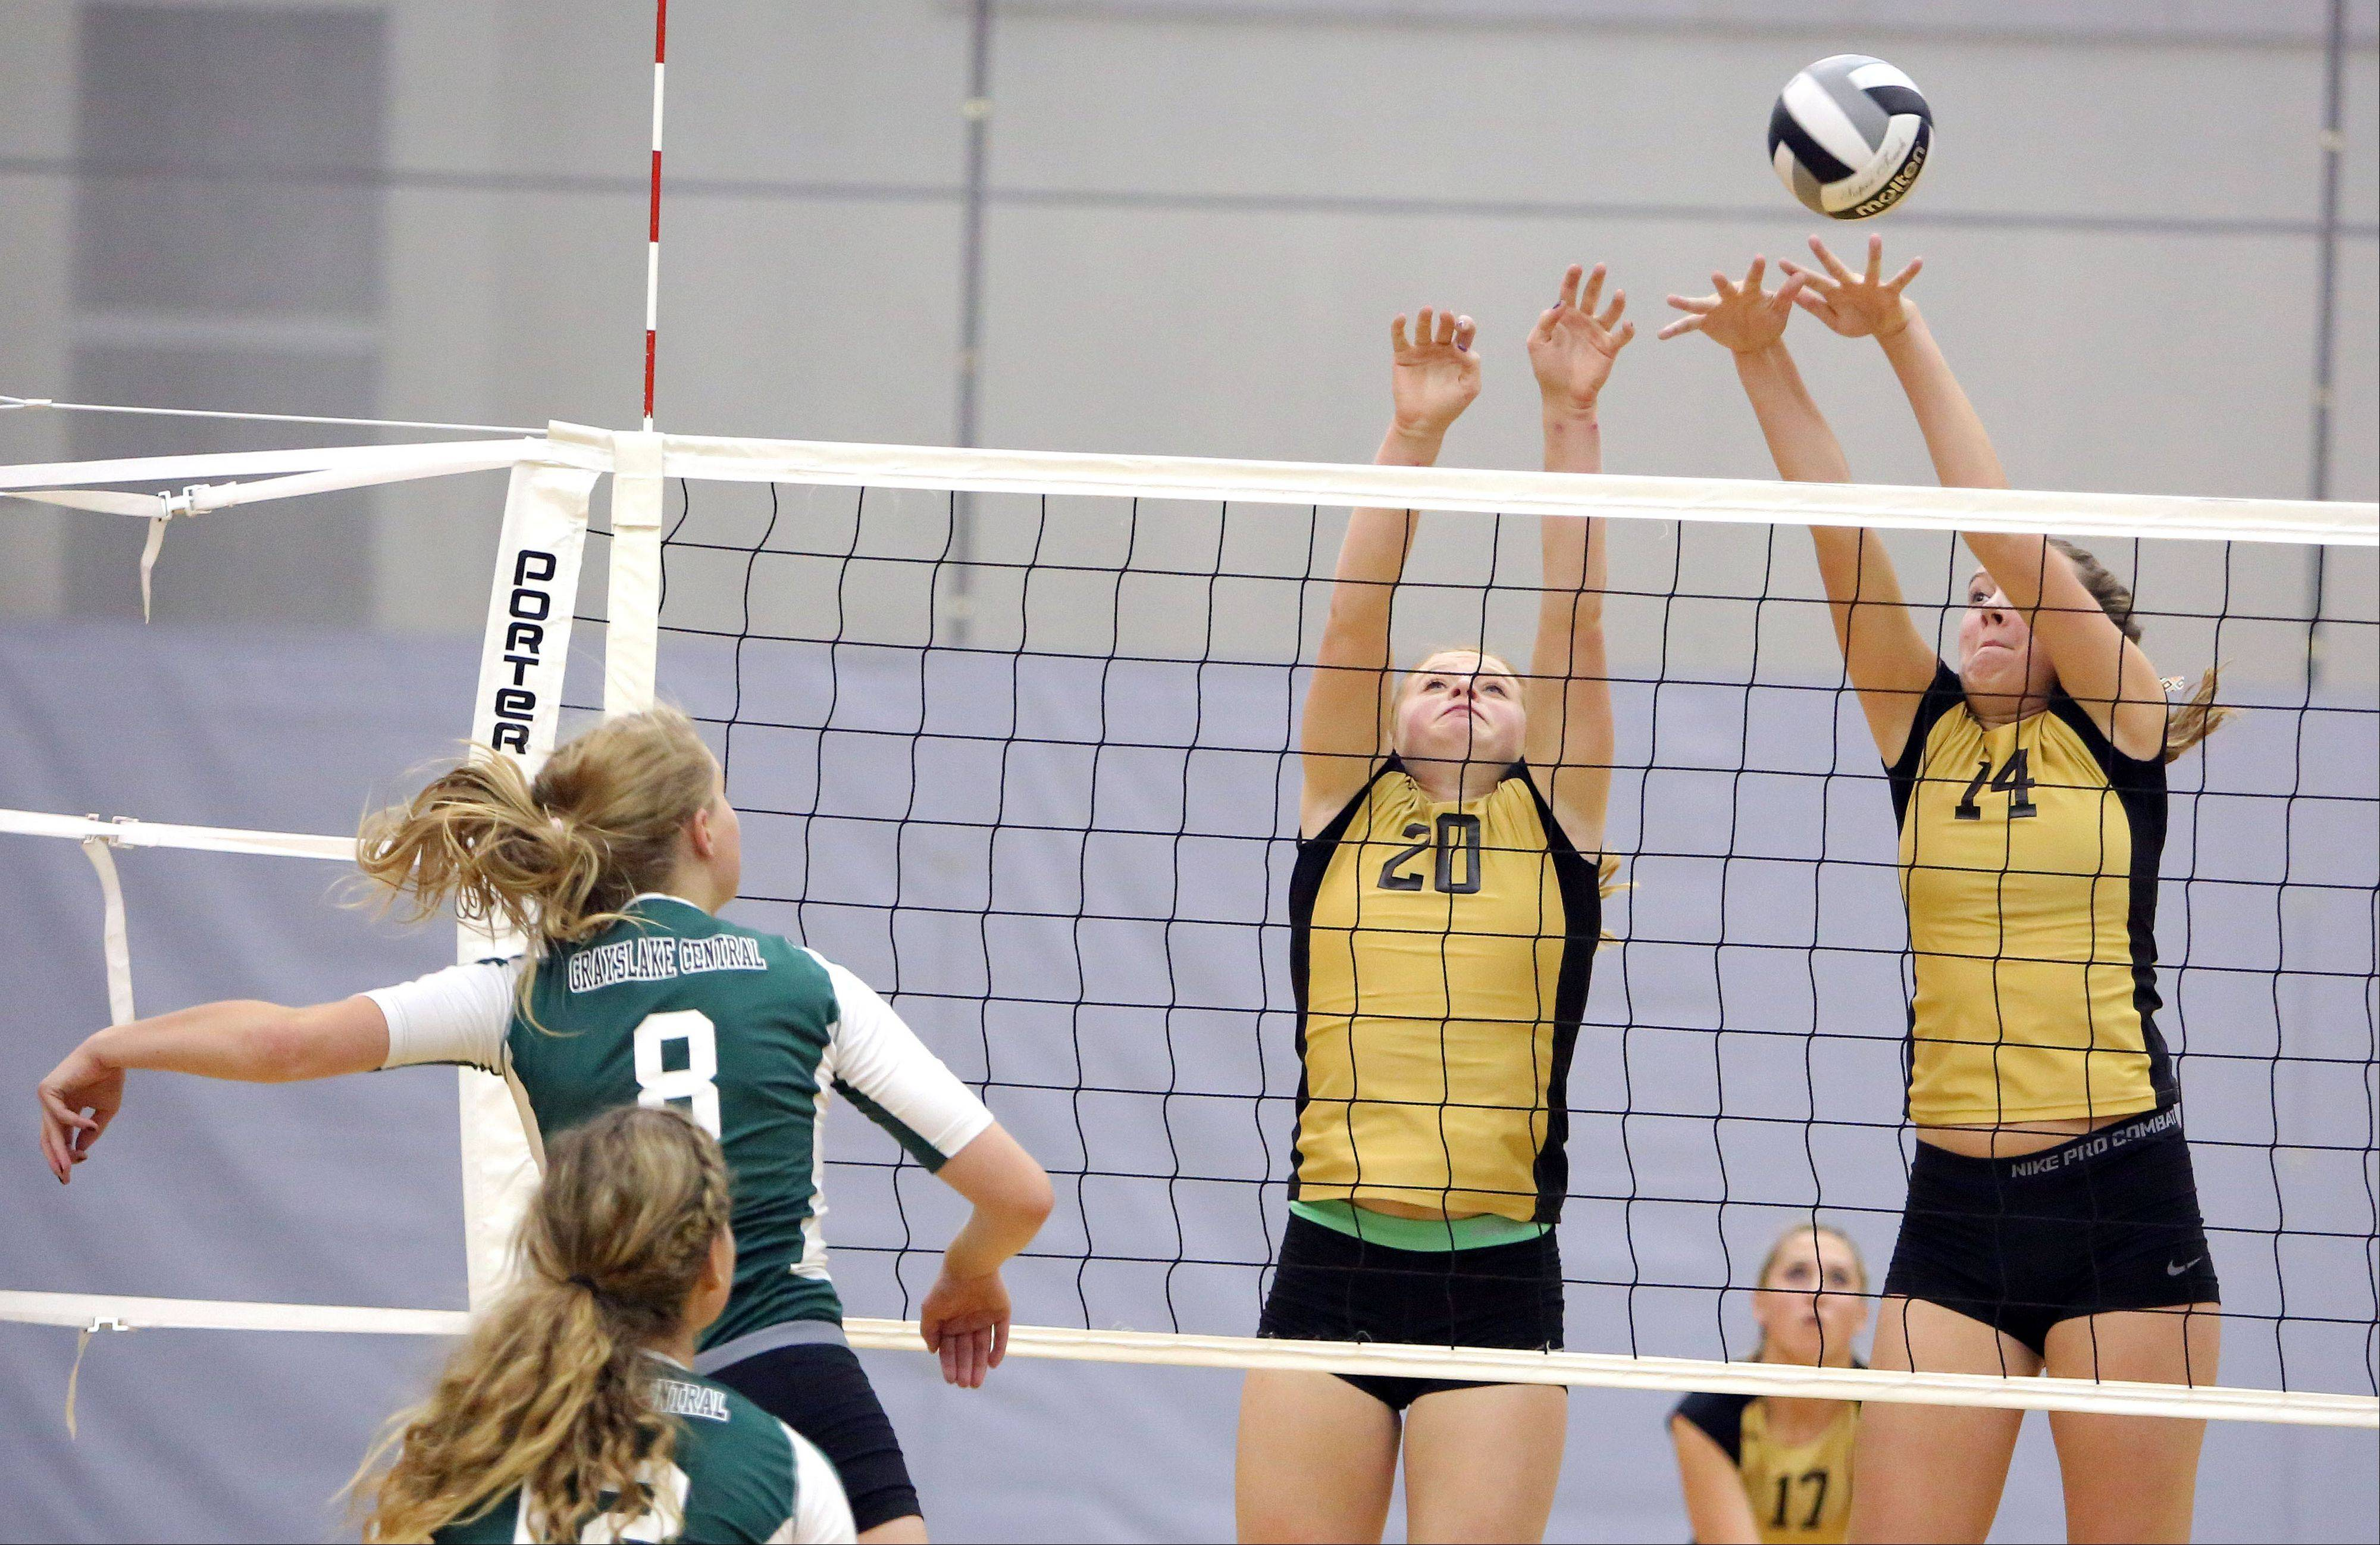 Grayslake Central's Alexandra Dahlstrom, left spikes one at Grayslake North's Bailee Hardy and Alaina Geissberger on Tuesday at Grayslake North.